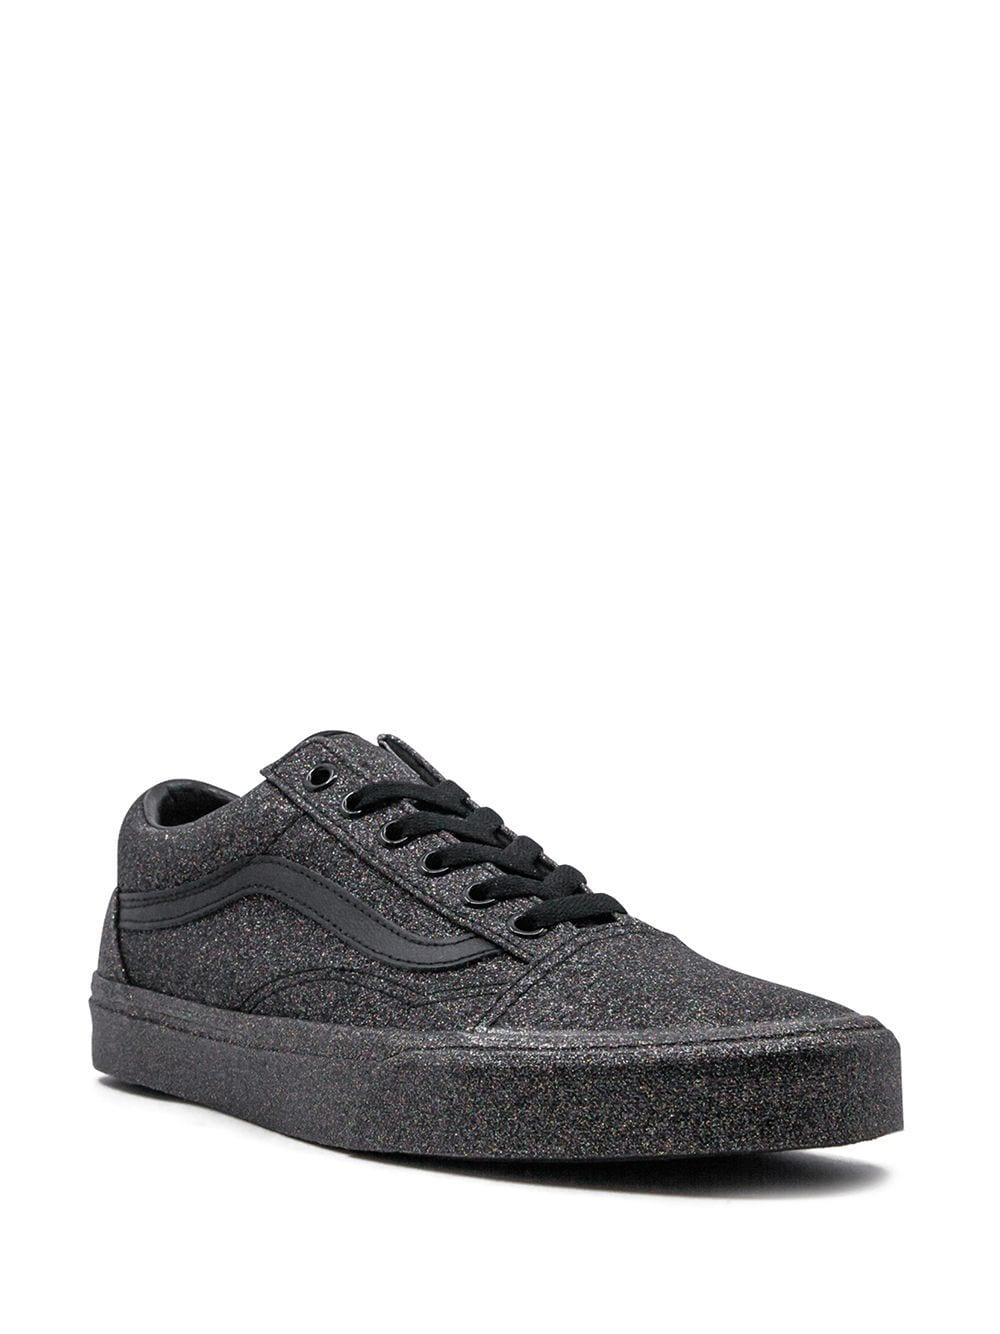 Baskets Old Skool Vans en coloris Noir JgWT